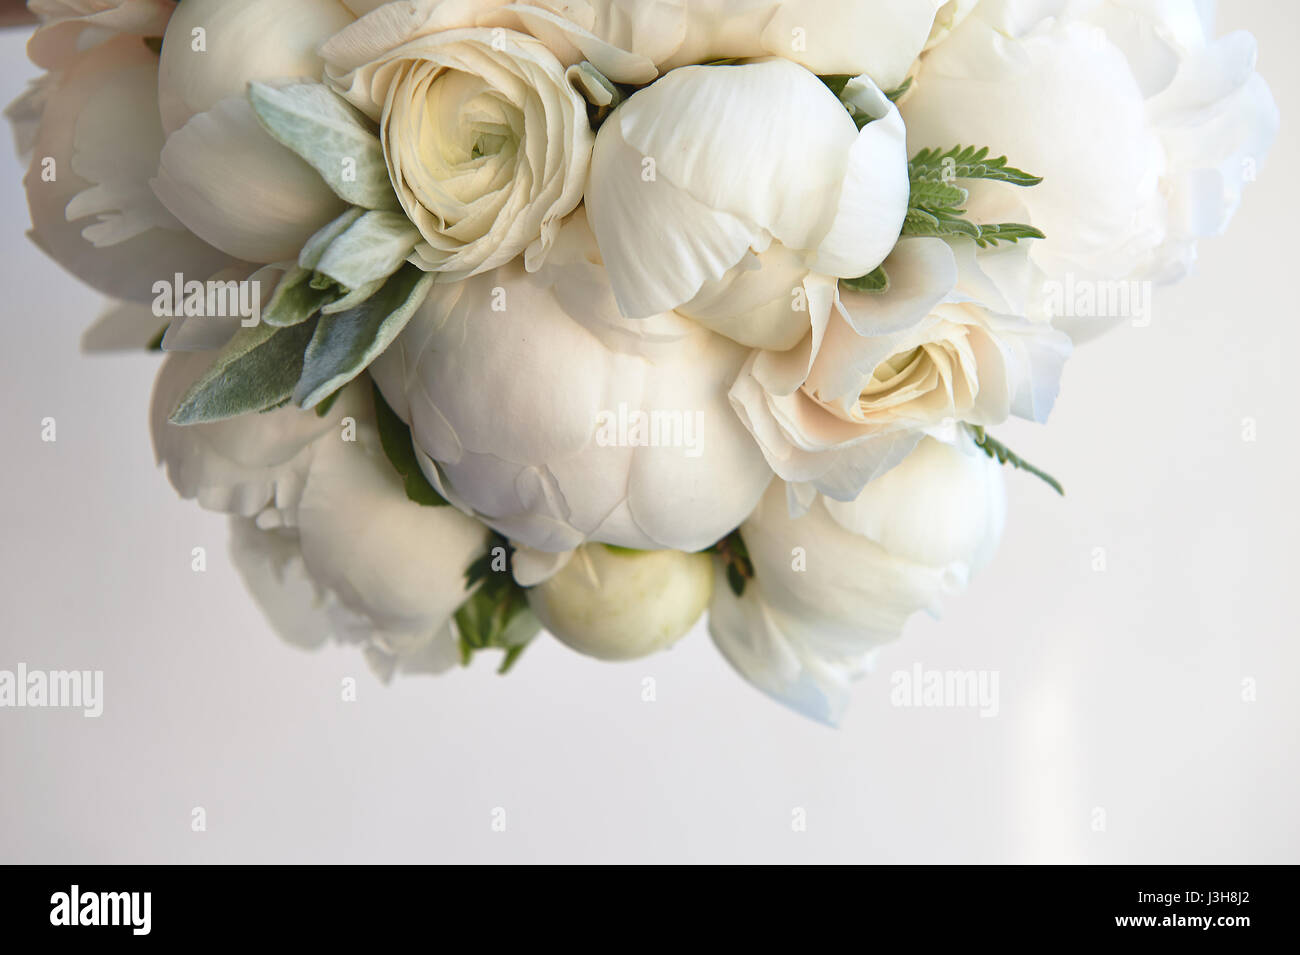 Wedding bouquet of white peonies and ranunculuses.Wedding floristry - Stock Image